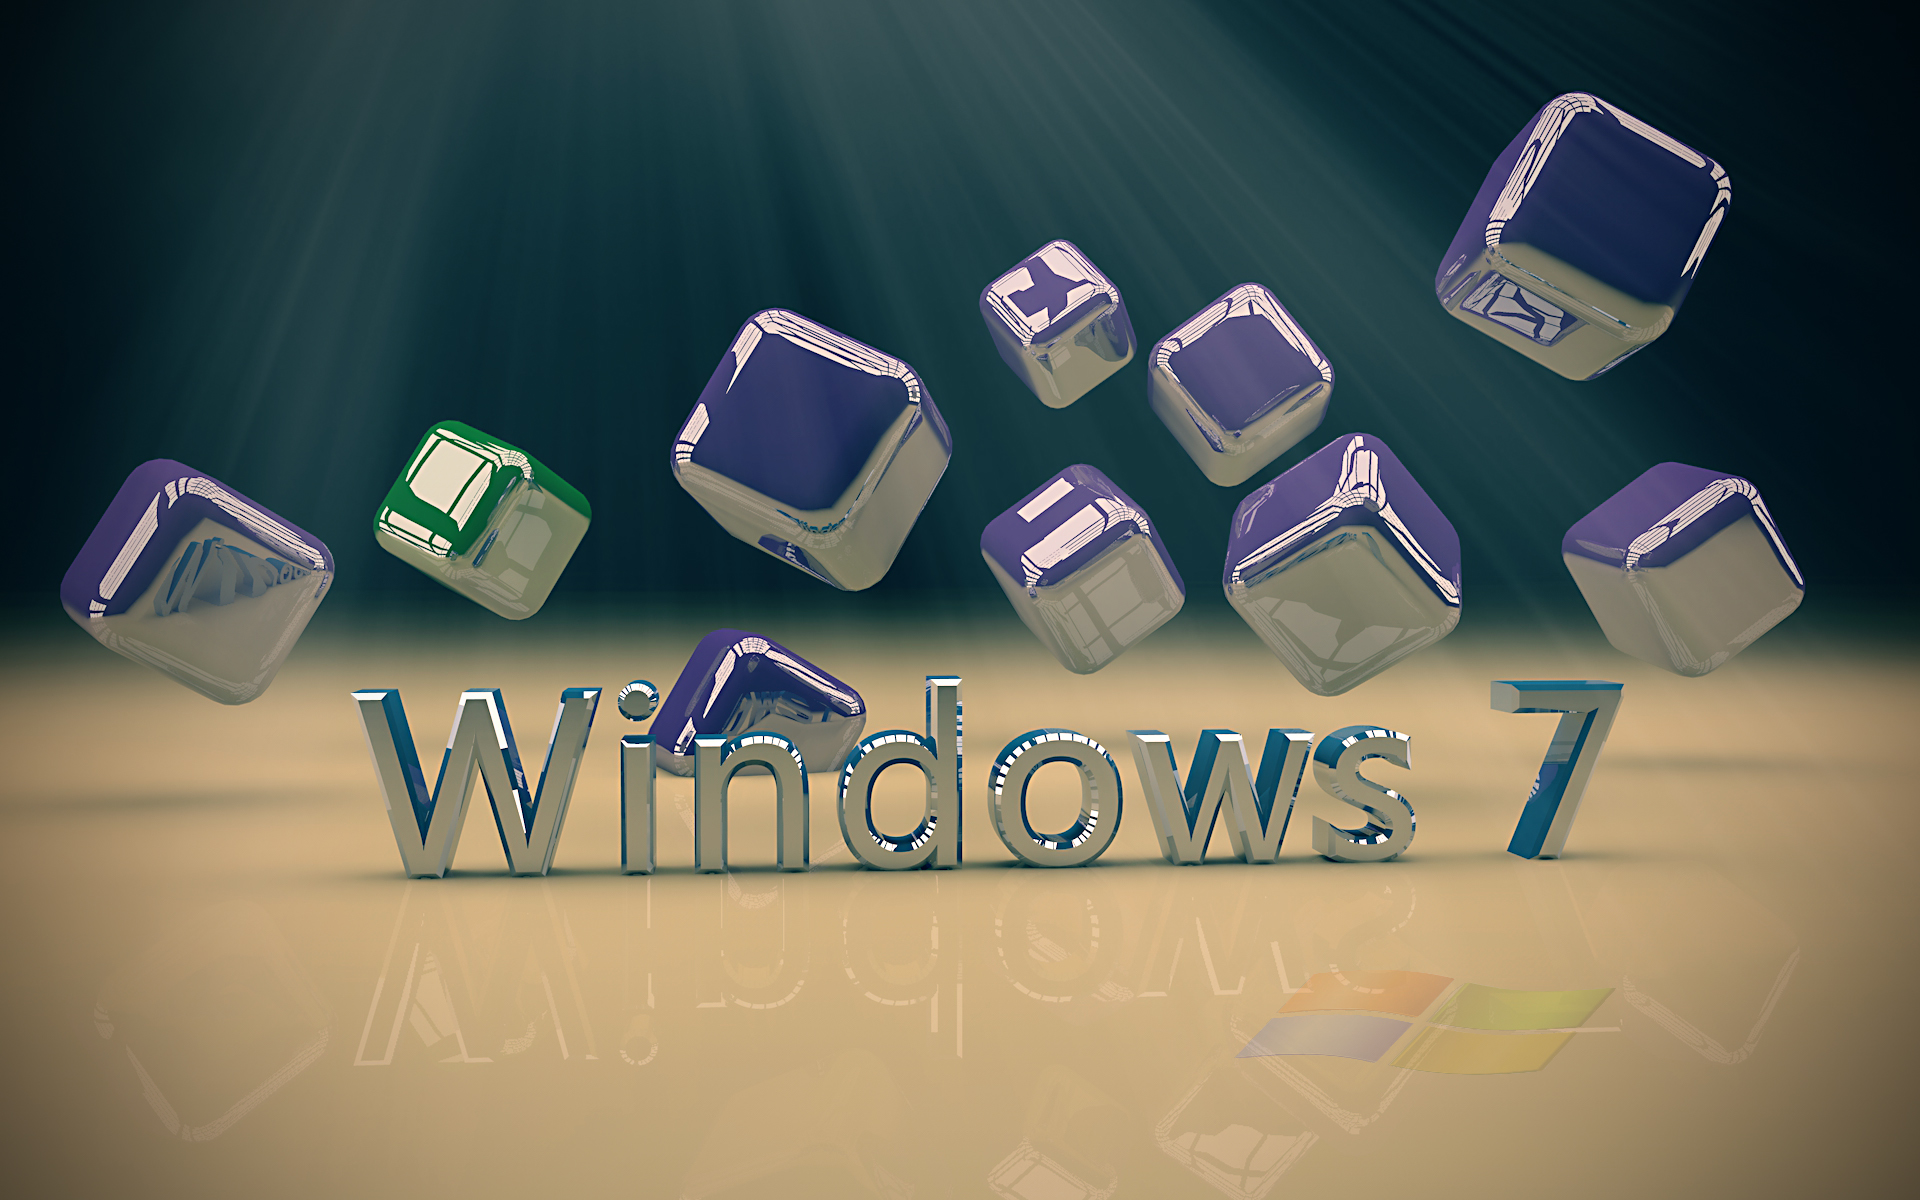 Windows 7 Wallpapers Backgrounds Hd 23